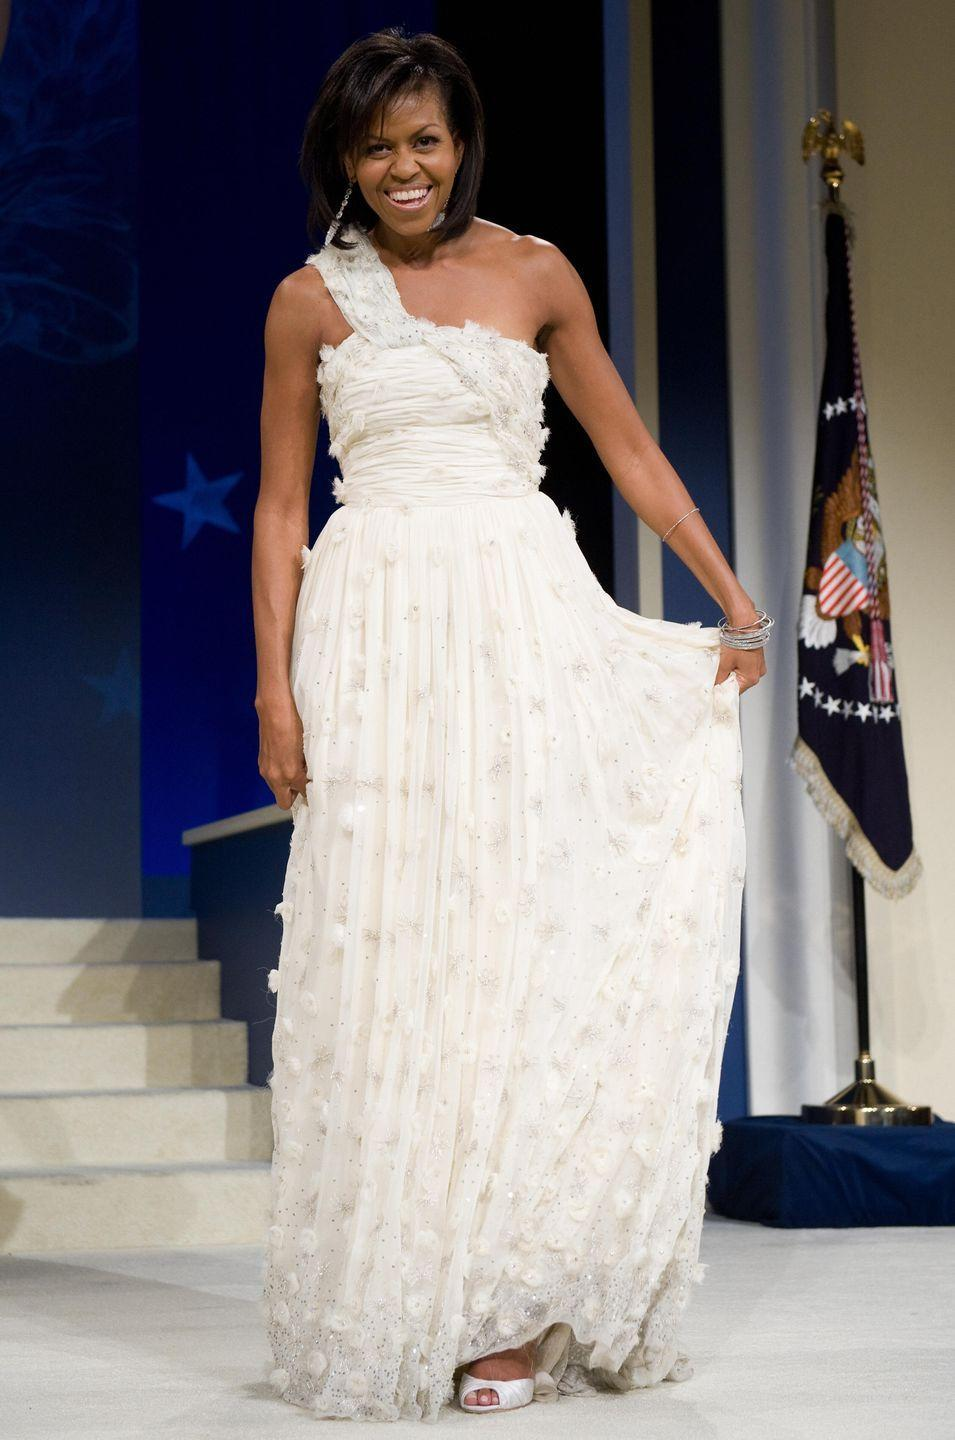 """<p>Considering the attention their outfits get, many first ladies enlist designers and stylists to help them dress for high-profile events. Melania Trump has worked with consultant <a href=""""https://www.nytimes.com/2017/01/25/fashion/melania-trump-inauguration-gown-designer-herve-pierre.html?mcubz=1"""" rel=""""nofollow noopener"""" target=""""_blank"""" data-ylk=""""slk:Hervé Pierre"""" class=""""link rapid-noclick-resp"""">Hervé Pierre</a>, while Michelle Obama used stylist <a href=""""https://www.townandcountrymag.com/style/fashion-trends/a25174575/michelle-obama-fashion-stylist-meredith-koop/"""" rel=""""nofollow noopener"""" target=""""_blank"""" data-ylk=""""slk:Meredith Koop"""" class=""""link rapid-noclick-resp"""">Meredith Koop</a>. Before her, Laura Bush worked with fashion designer <a href=""""https://www.nbcdfw.com/news/local/dallas-fashion-designer-to-first-lady-laura-bush-give-nod-to-new-first-lady-fashion/28813/"""" rel=""""nofollow noopener"""" target=""""_blank"""" data-ylk=""""slk:Michael Faircloth"""" class=""""link rapid-noclick-resp"""">Michael Faircloth</a>.</p>"""